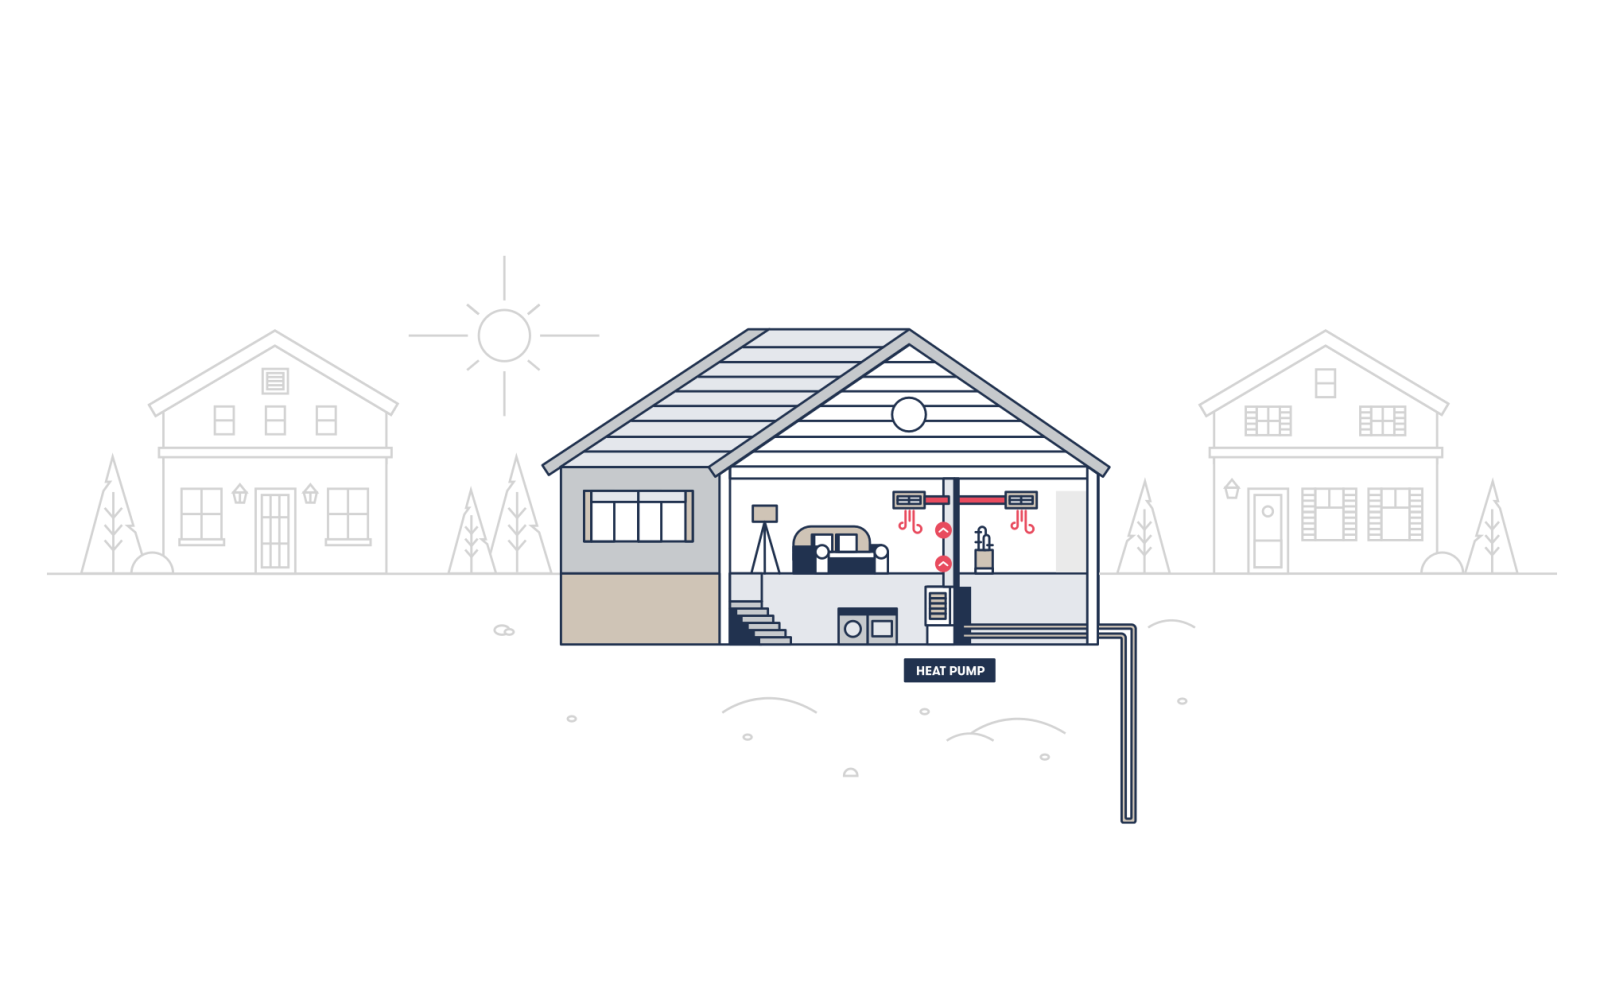 Homeowners are saving 50% on heating with Dandelion's geothermal system